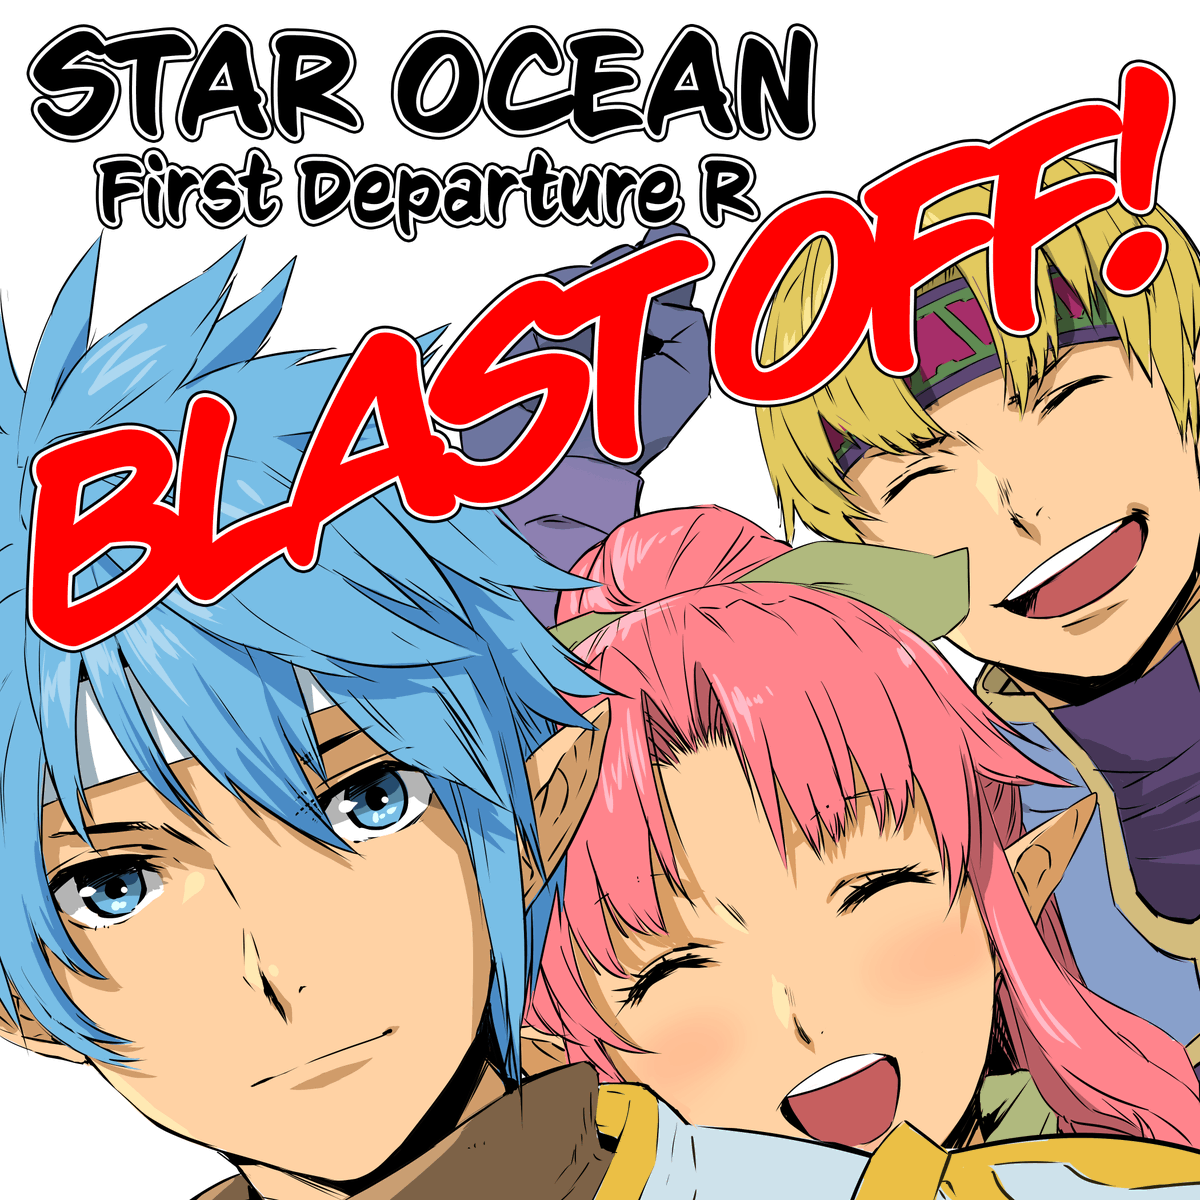 🌌 A new era of exploration begins today! STAR OCEAN First Departure R is digitally available now on #PS4 and #NintendoSwitch! PS4: sqex.link/SOFDRPS4 Switch: sqex.link/SOFDRNSW #StarOcean